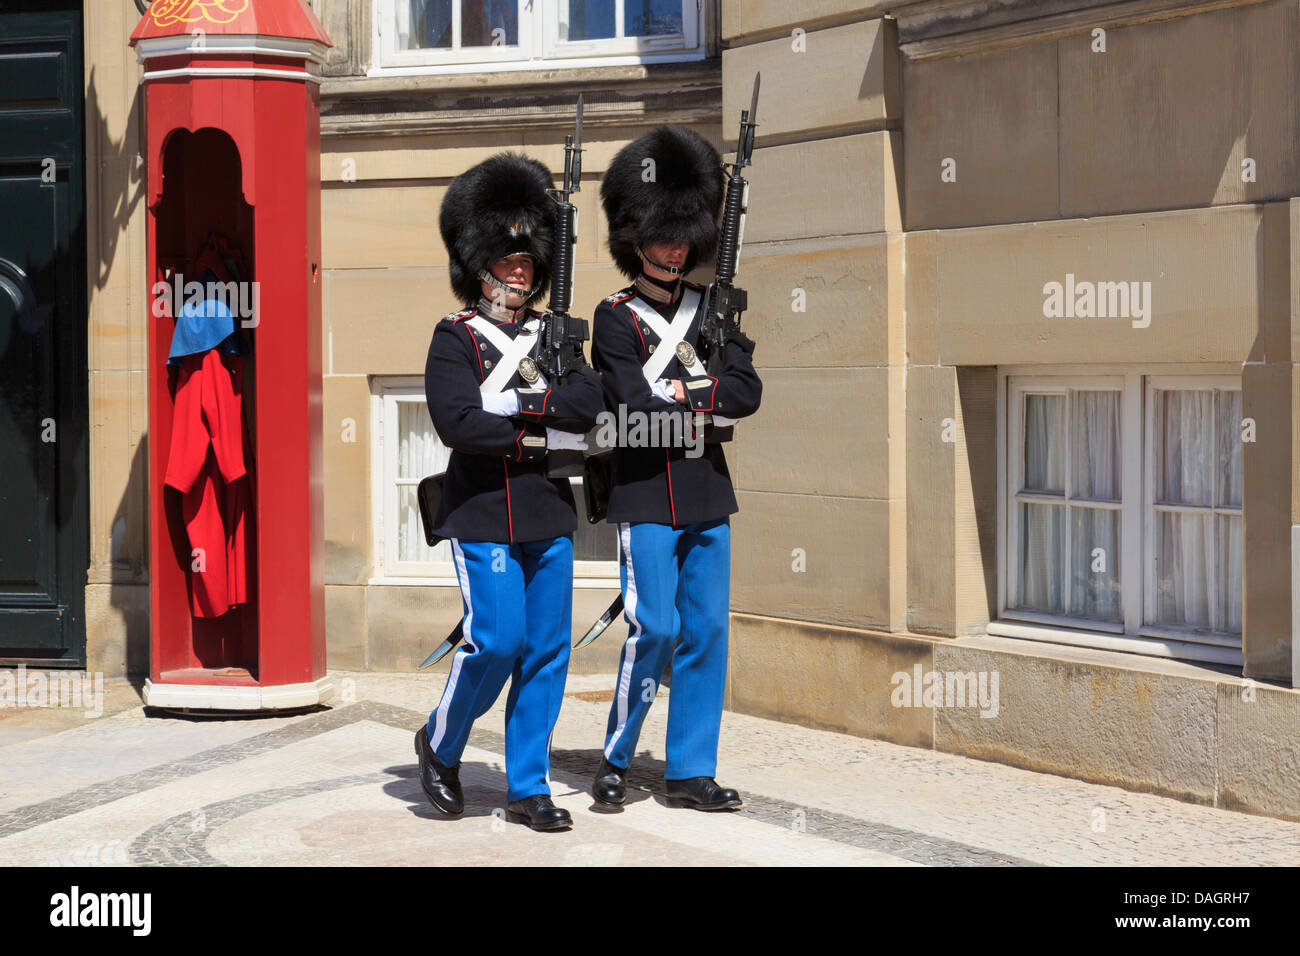 Two Guards on guard duty guarding Amalienborg or Royal Palace official residence of Danish Queen in Copenhagen, - Stock Image